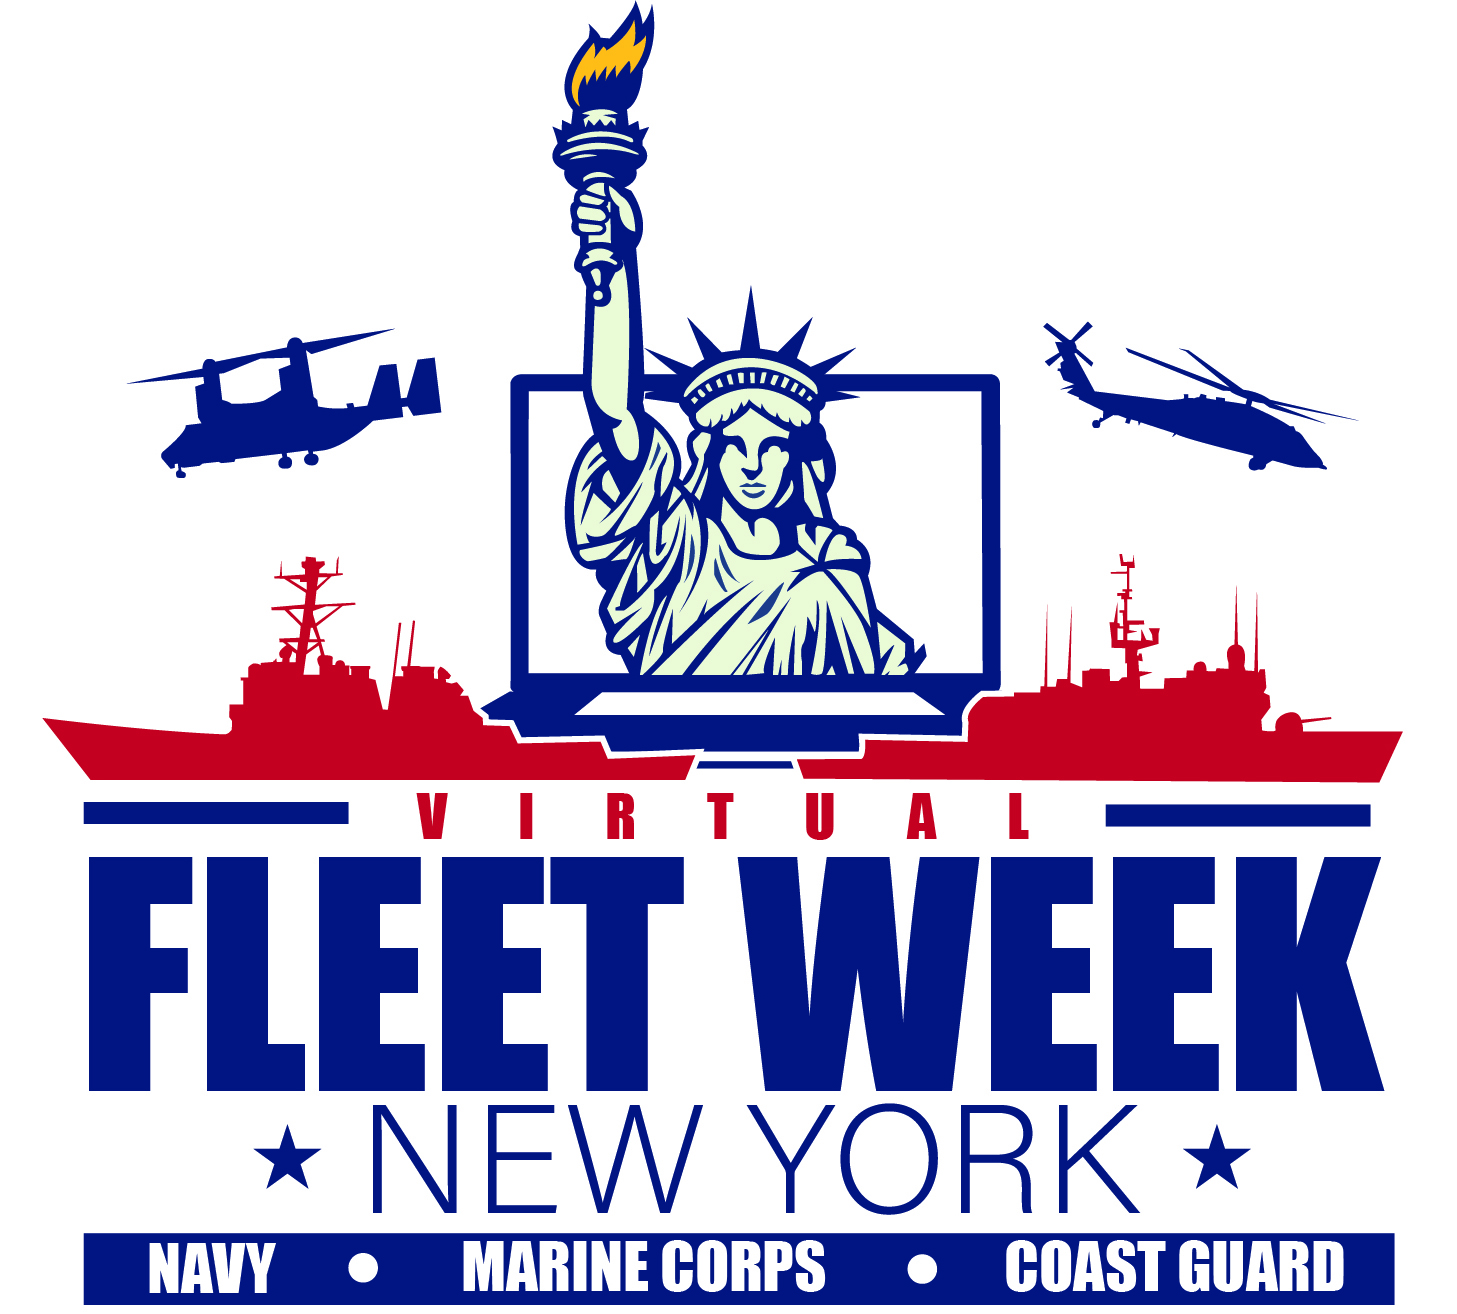 Fleet Week Logo White background Blue Outline of Statue of Liberty, blue helicopters and red ships